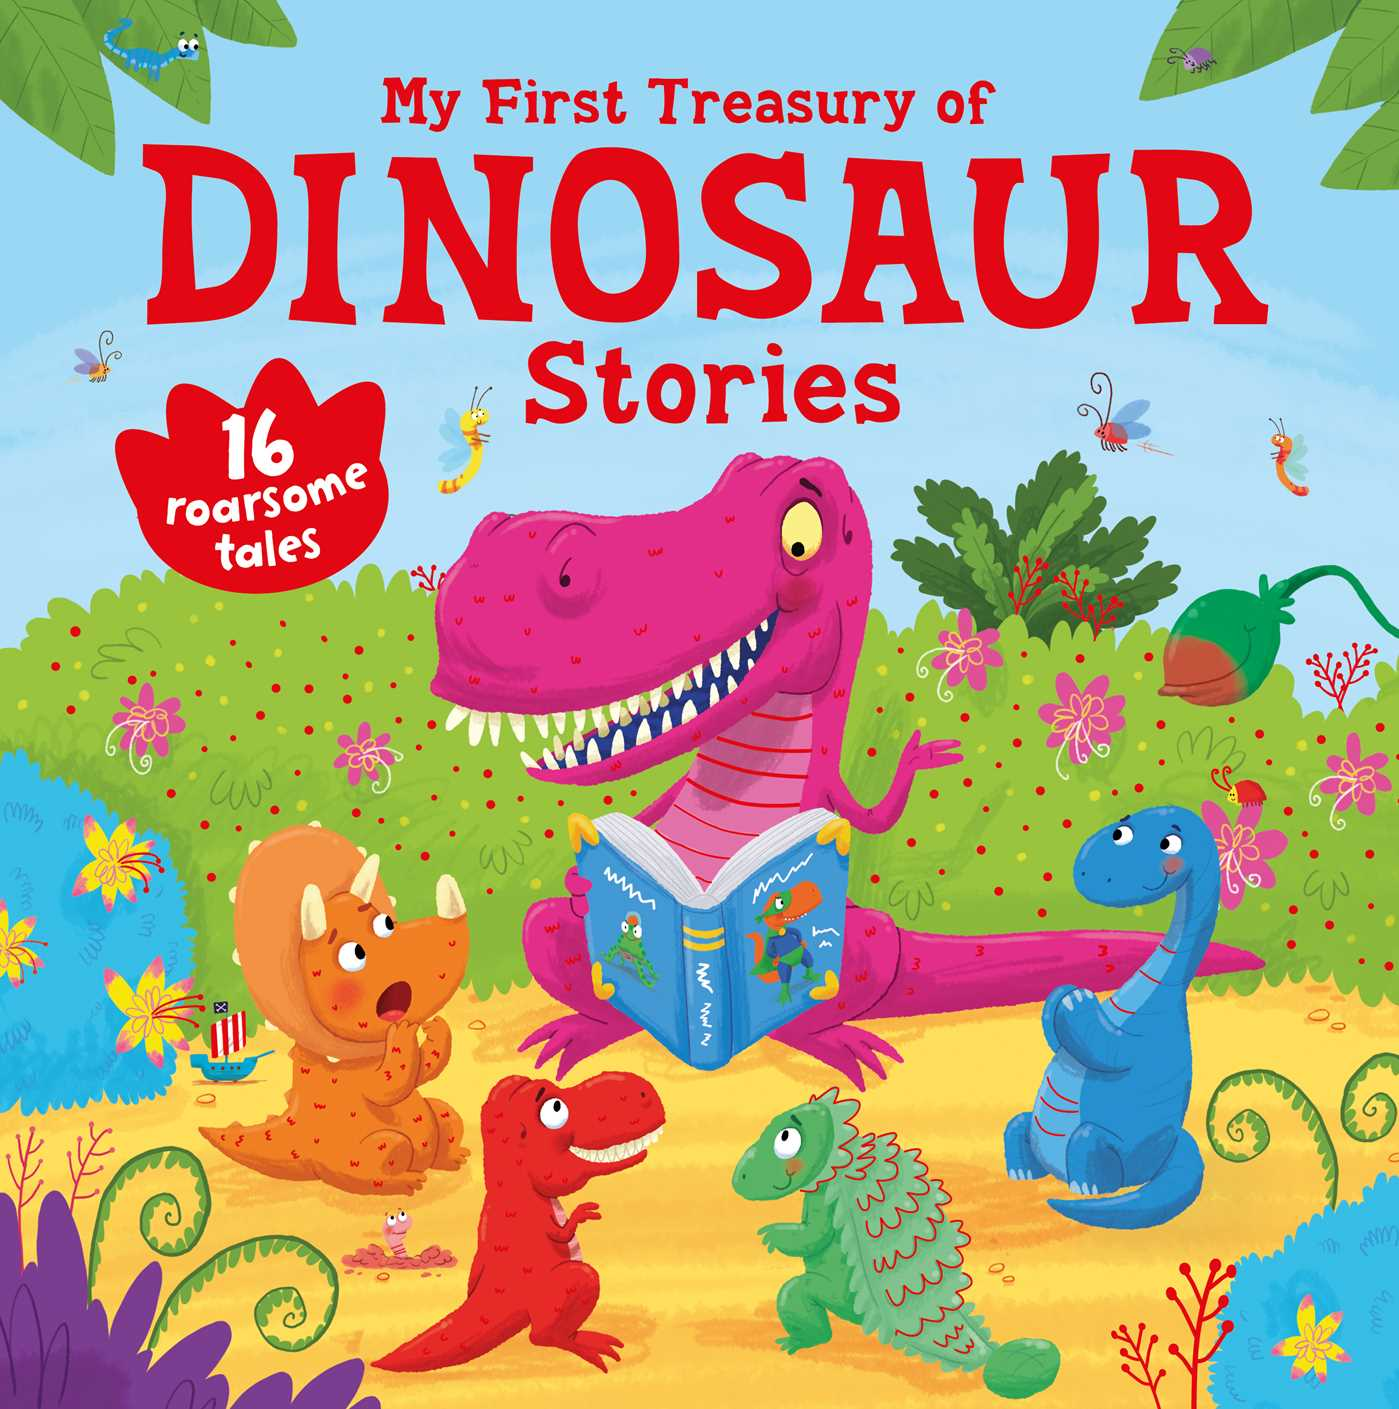 My first treasury of dinosaur stories 9781499880397 hr